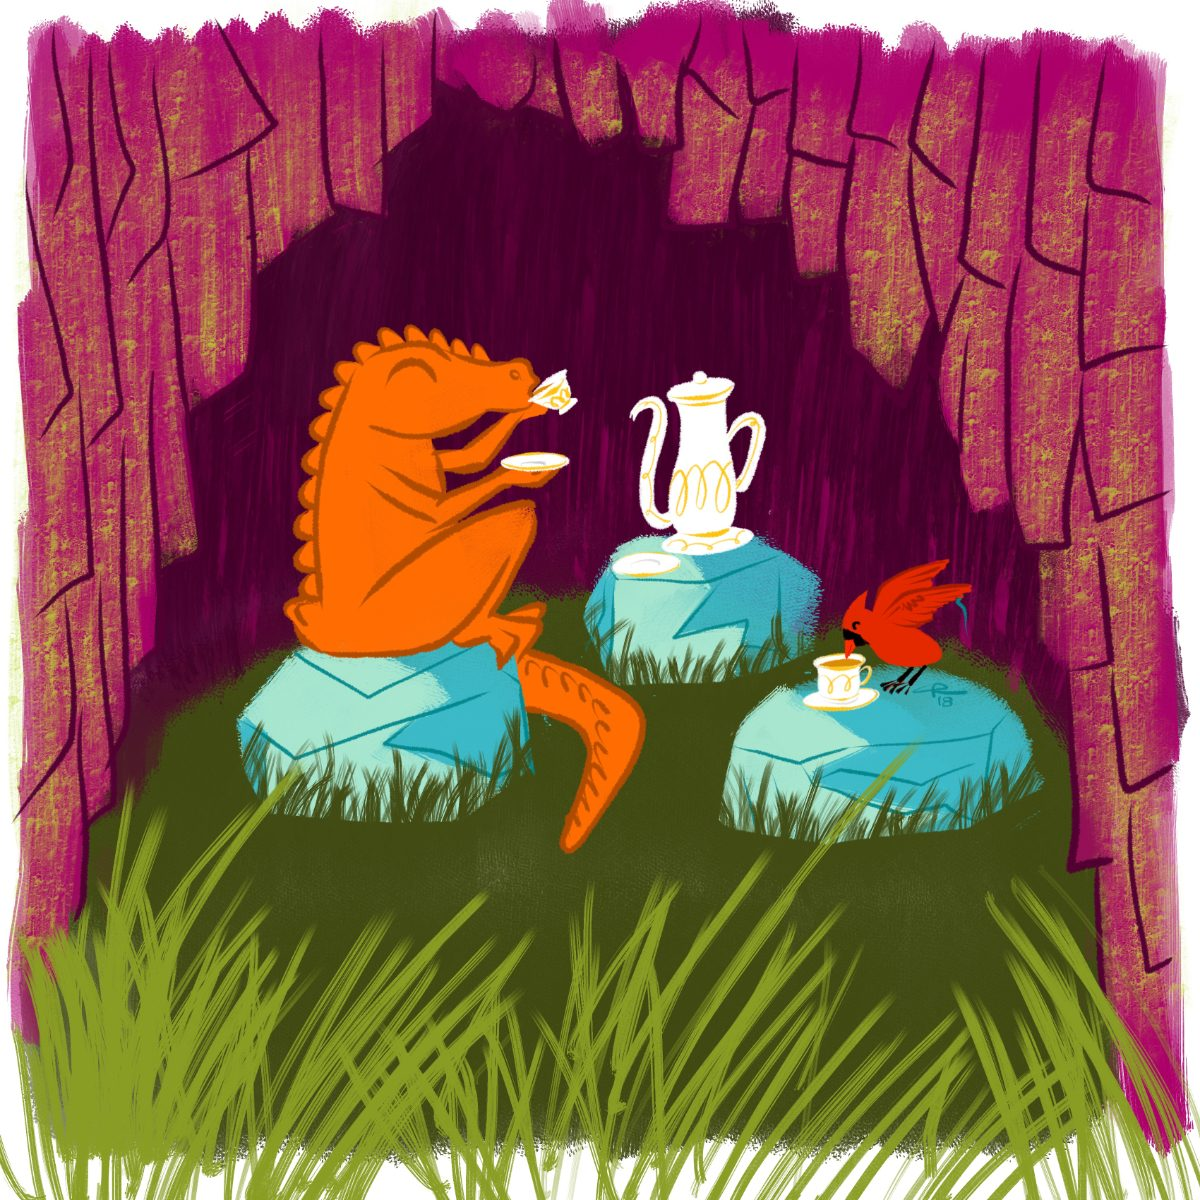 An image of a dragon and a cardinal drinking tea in a tree stump